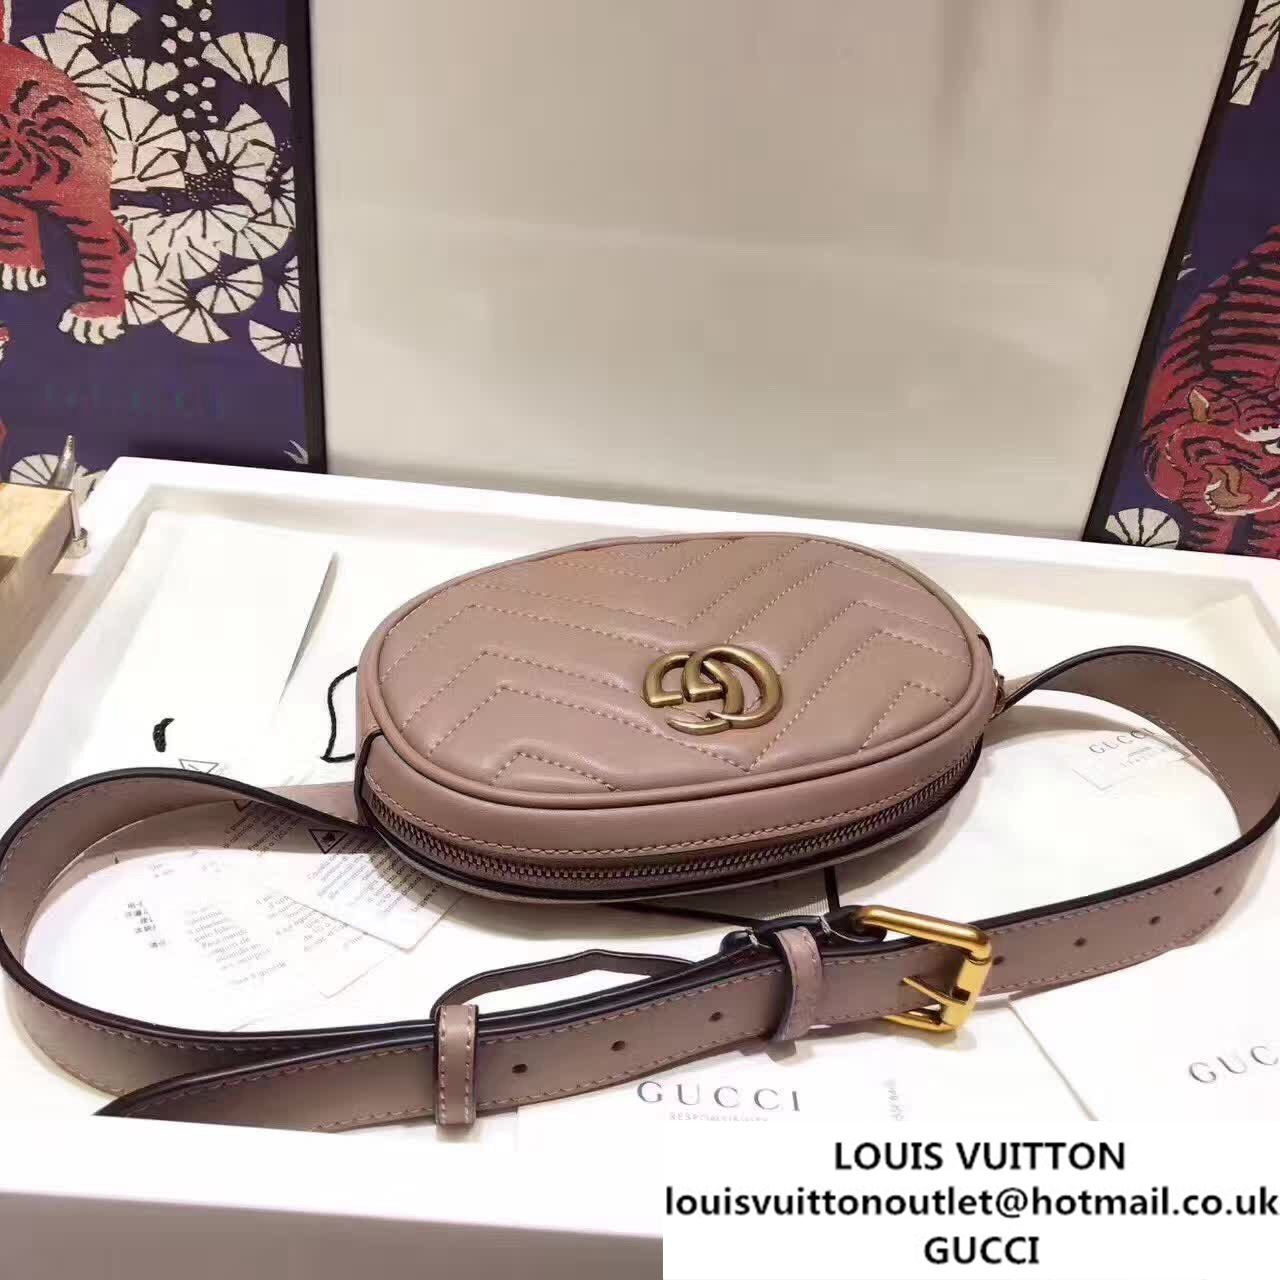 5753384cc7ad Gucci GG Marmont Matelasse Leather Belt Bag 476437 Nude Pink 2017 ...